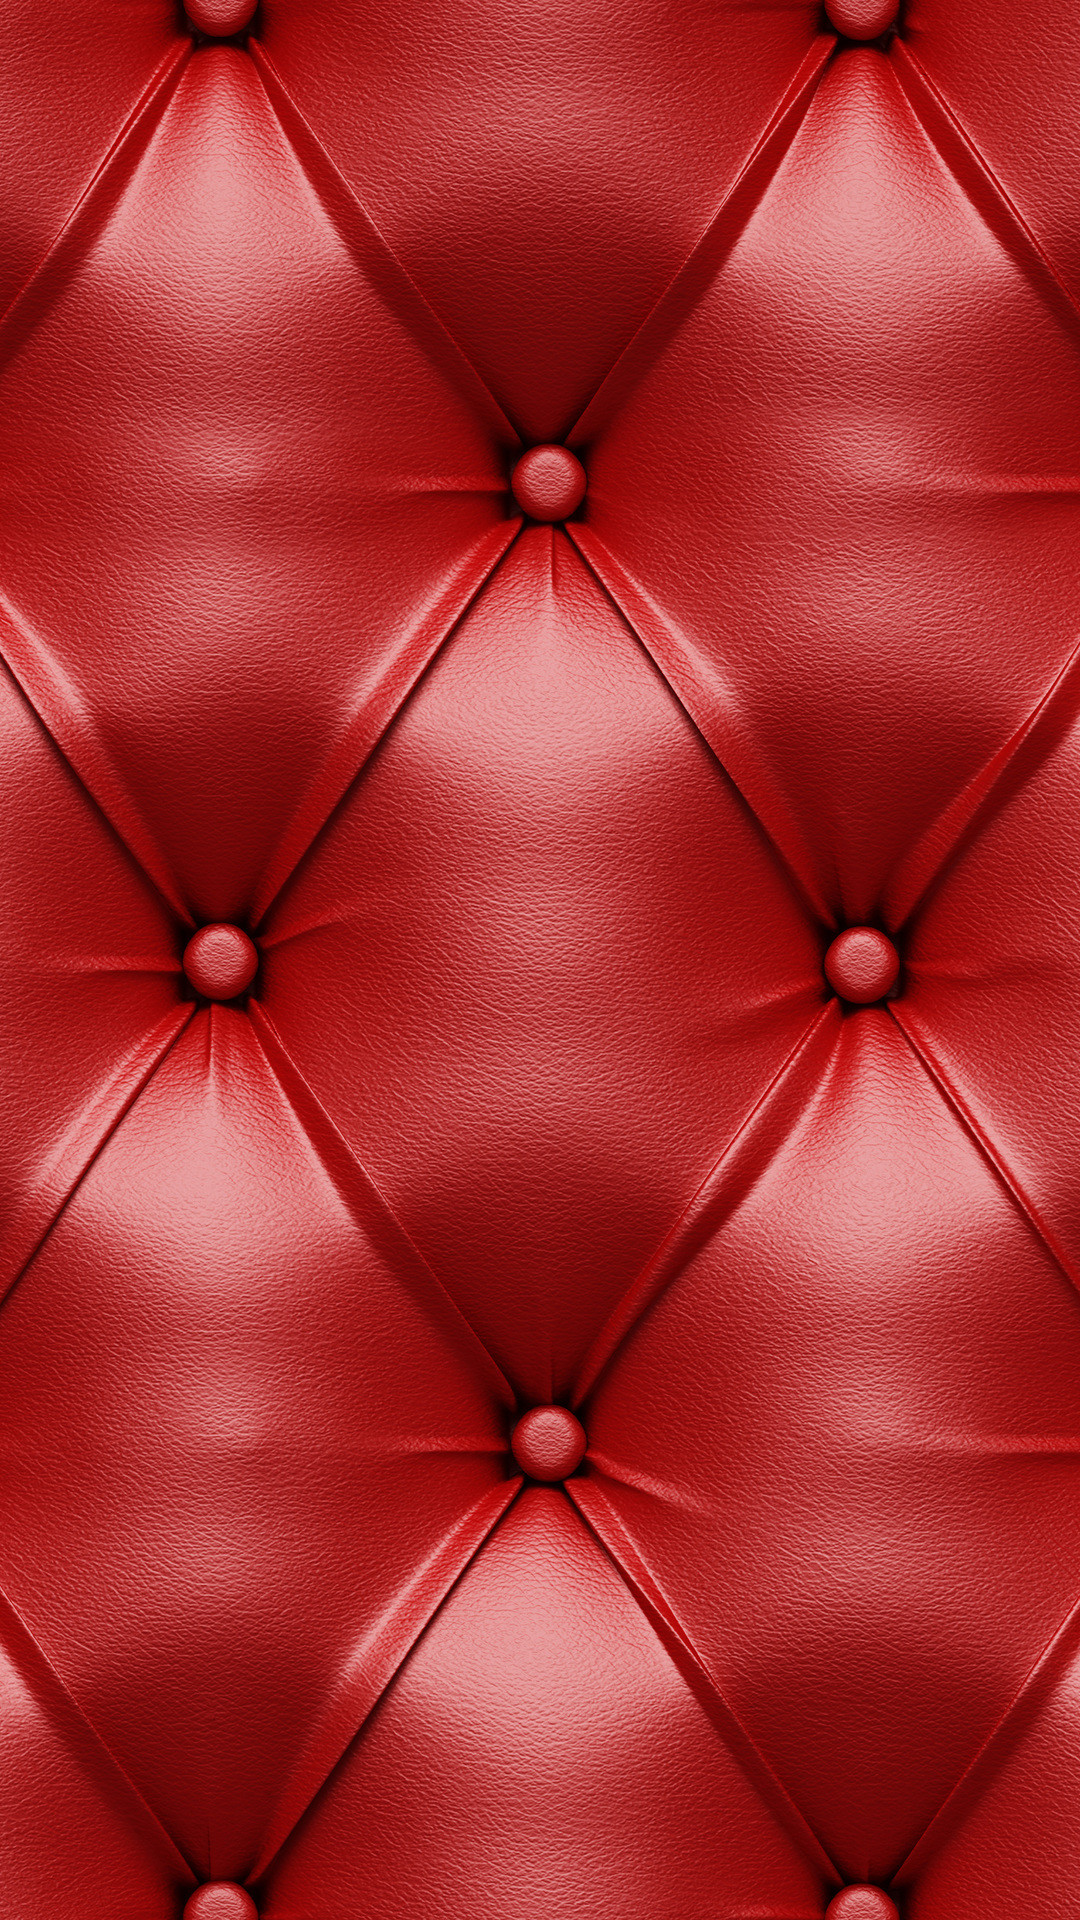 texture, luxury, red, leather, background, upholstery, leather photo